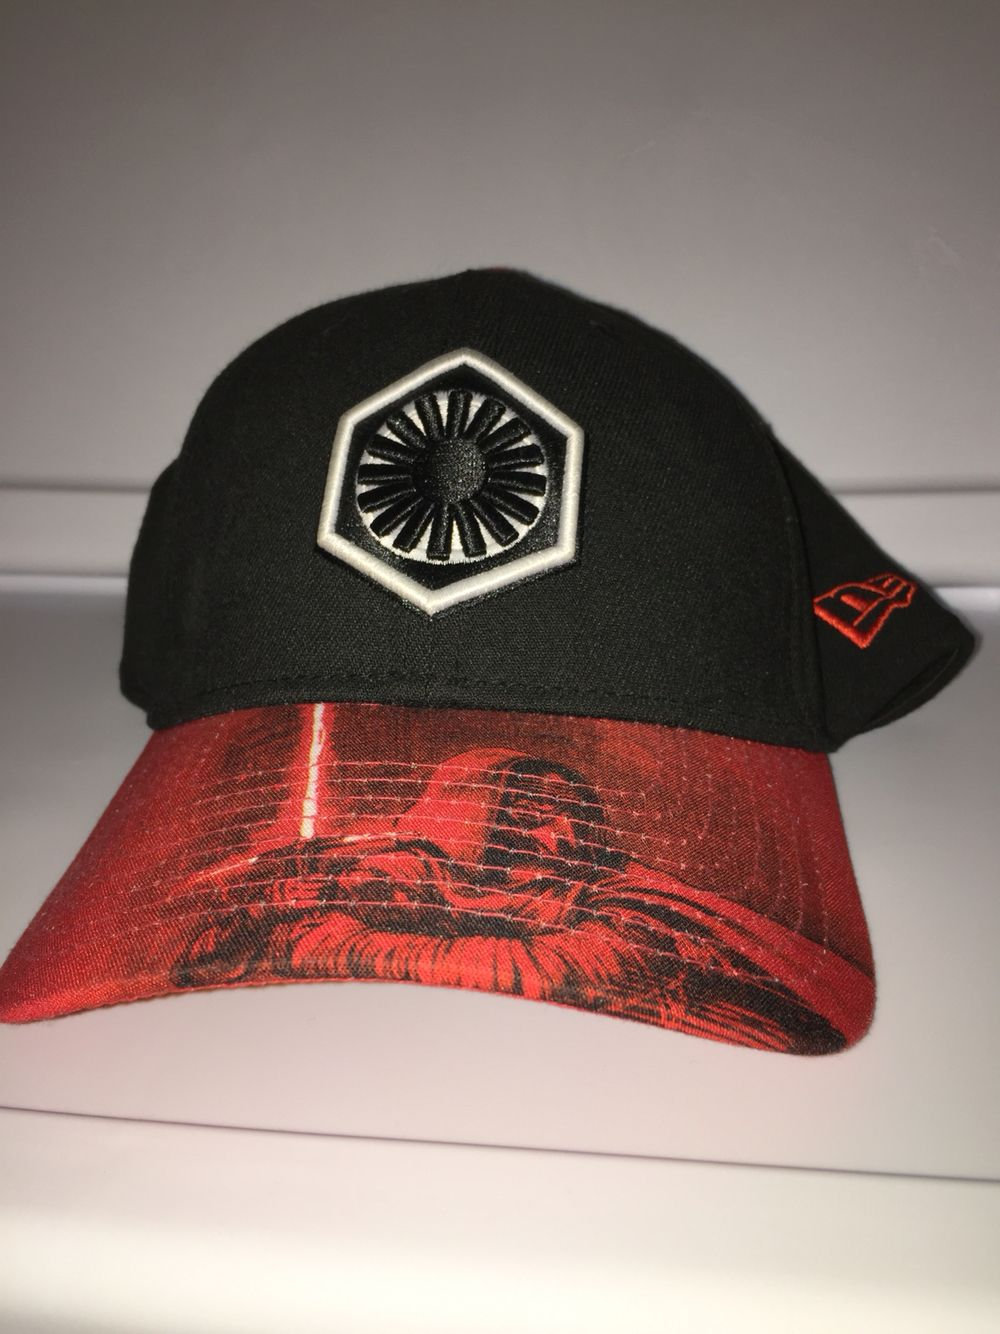 dfd6d7e6 New era Star Wars first order symbol Kylo Ren on the curved brim Star Wars  the force awakens on the back